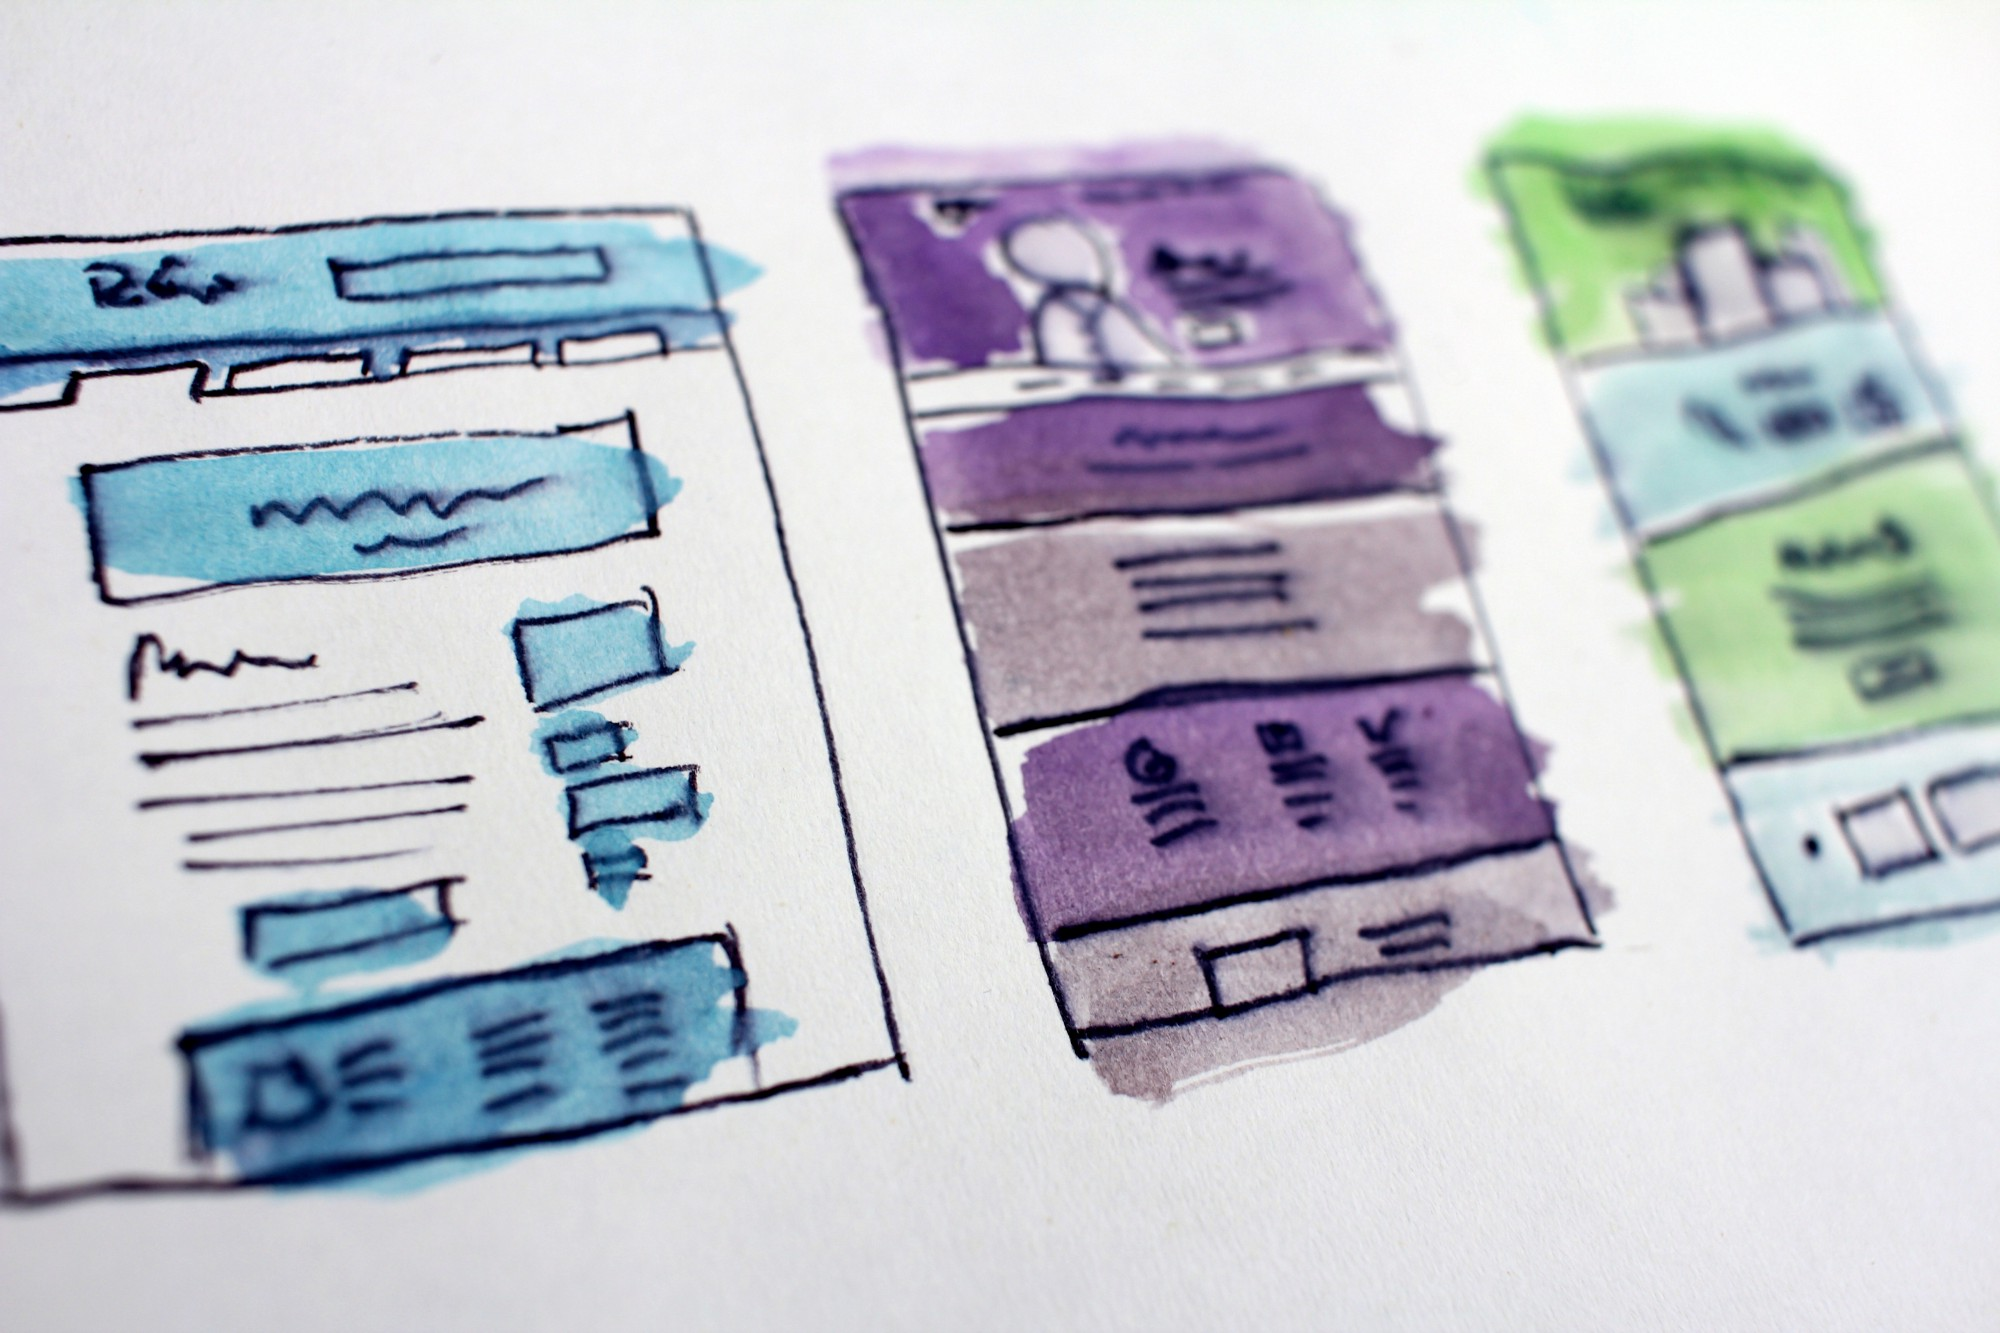 Quick and colourful wireframes of 3 different mobile interfaces.